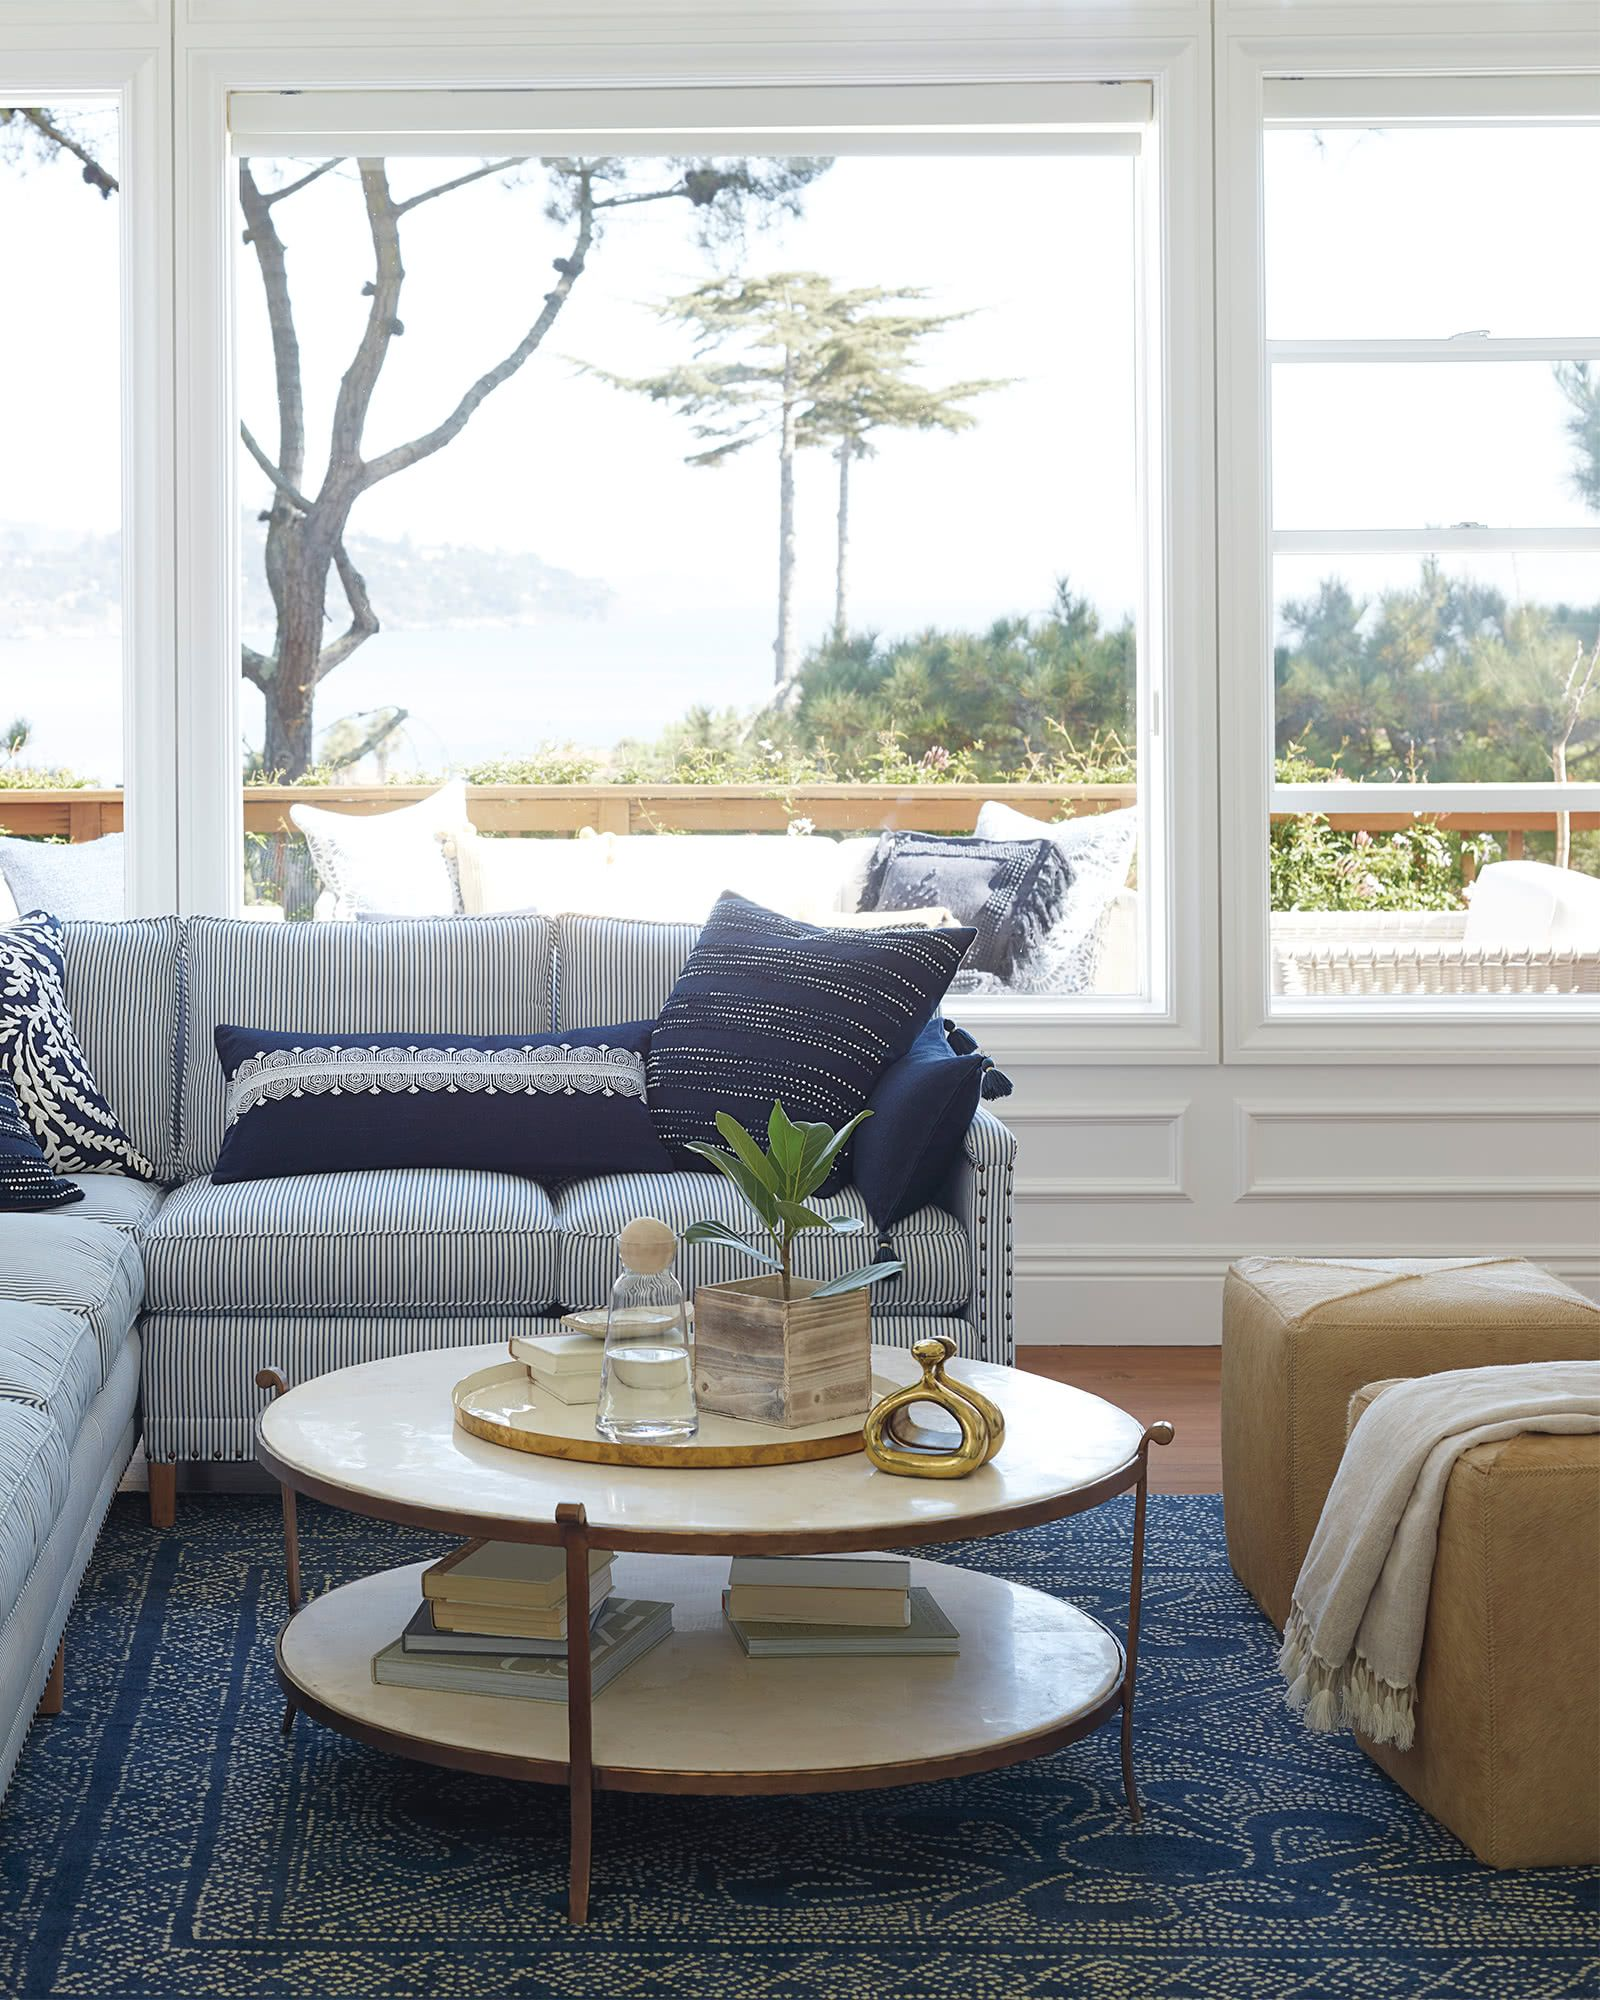 Pin By Michelle O Leary On Quick Saves In 2021 Blue And White Living Room Stone Coffee Table Home Decor [ 2000 x 1600 Pixel ]